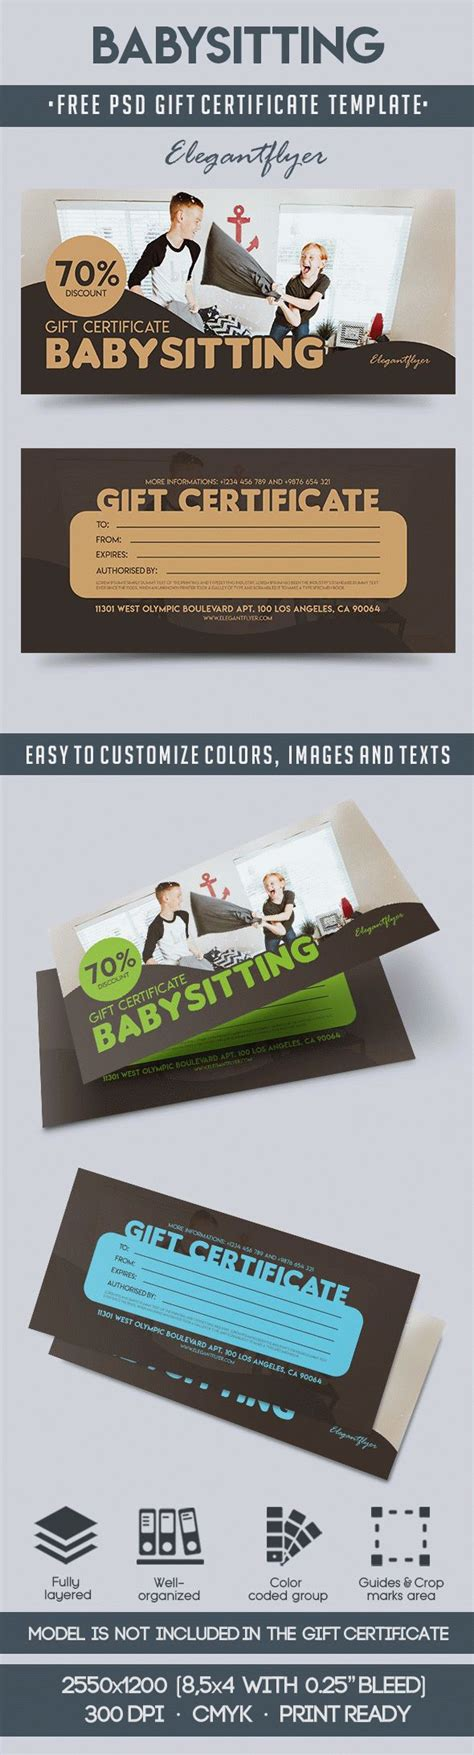 babysitting gift certificate template free babysitting free gift certificate psd template by